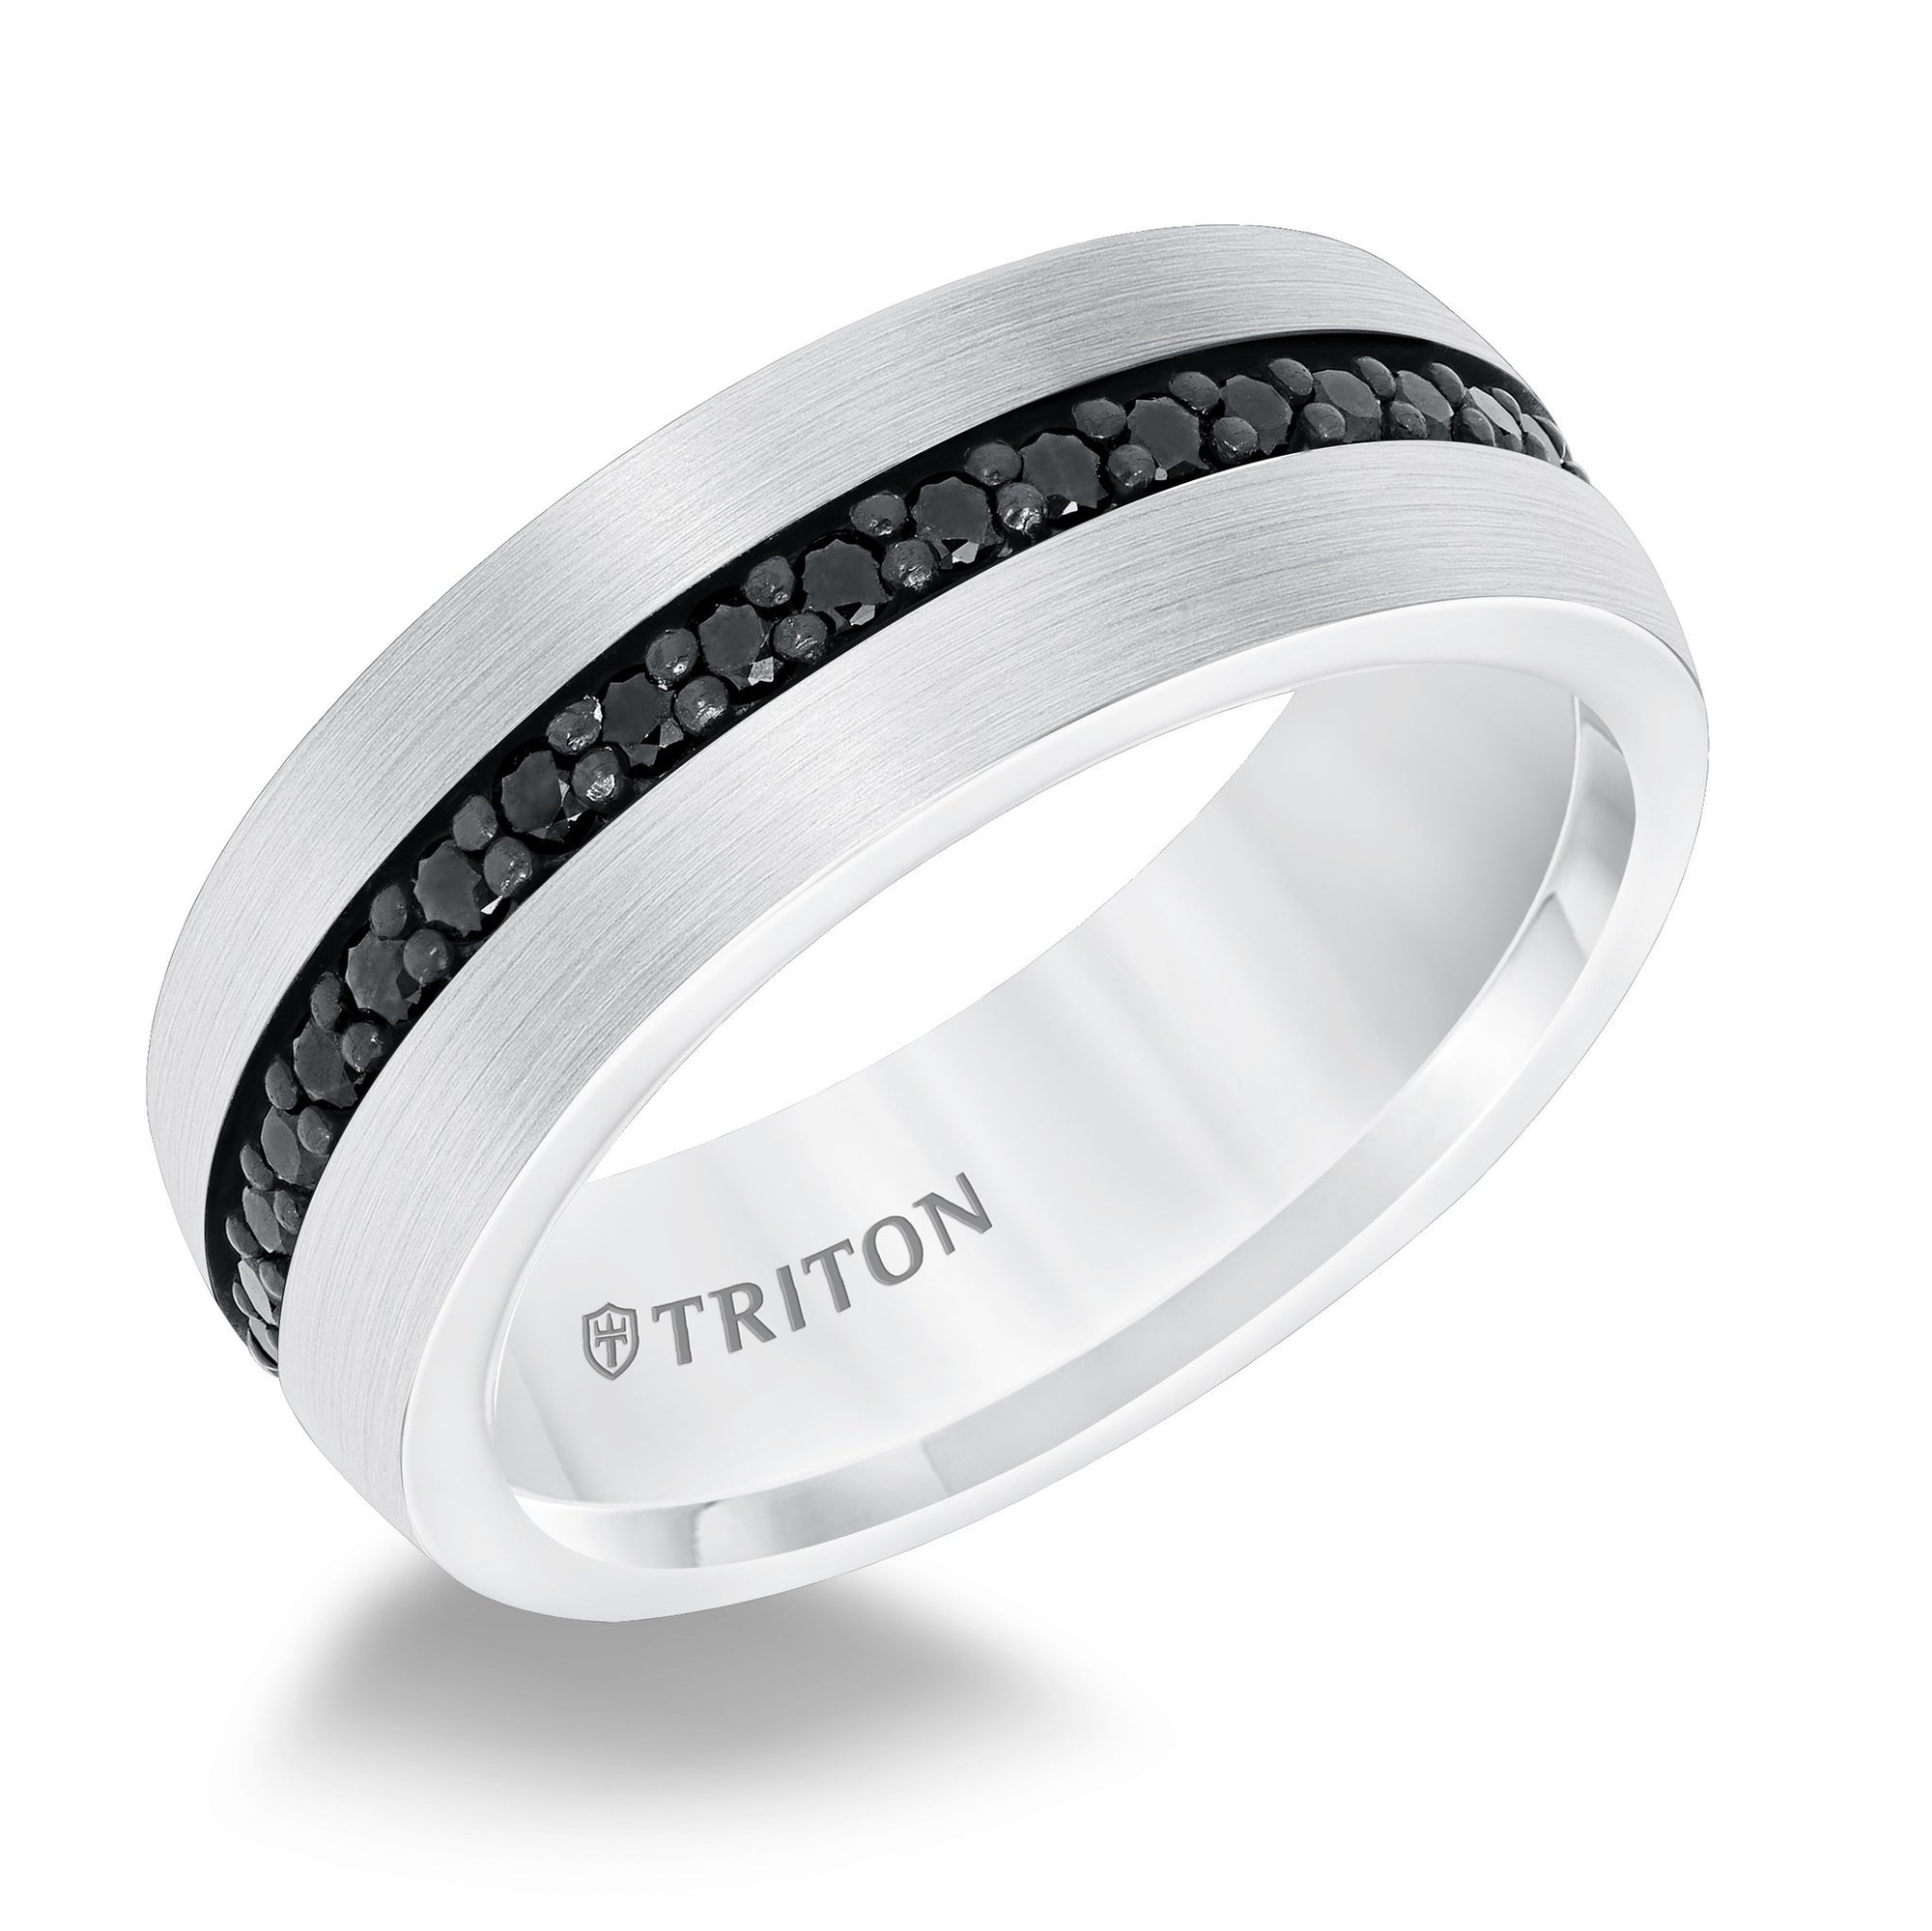 gq part you rings photos tiffany for to death triton wedding ll gallery best until does bands men want wear